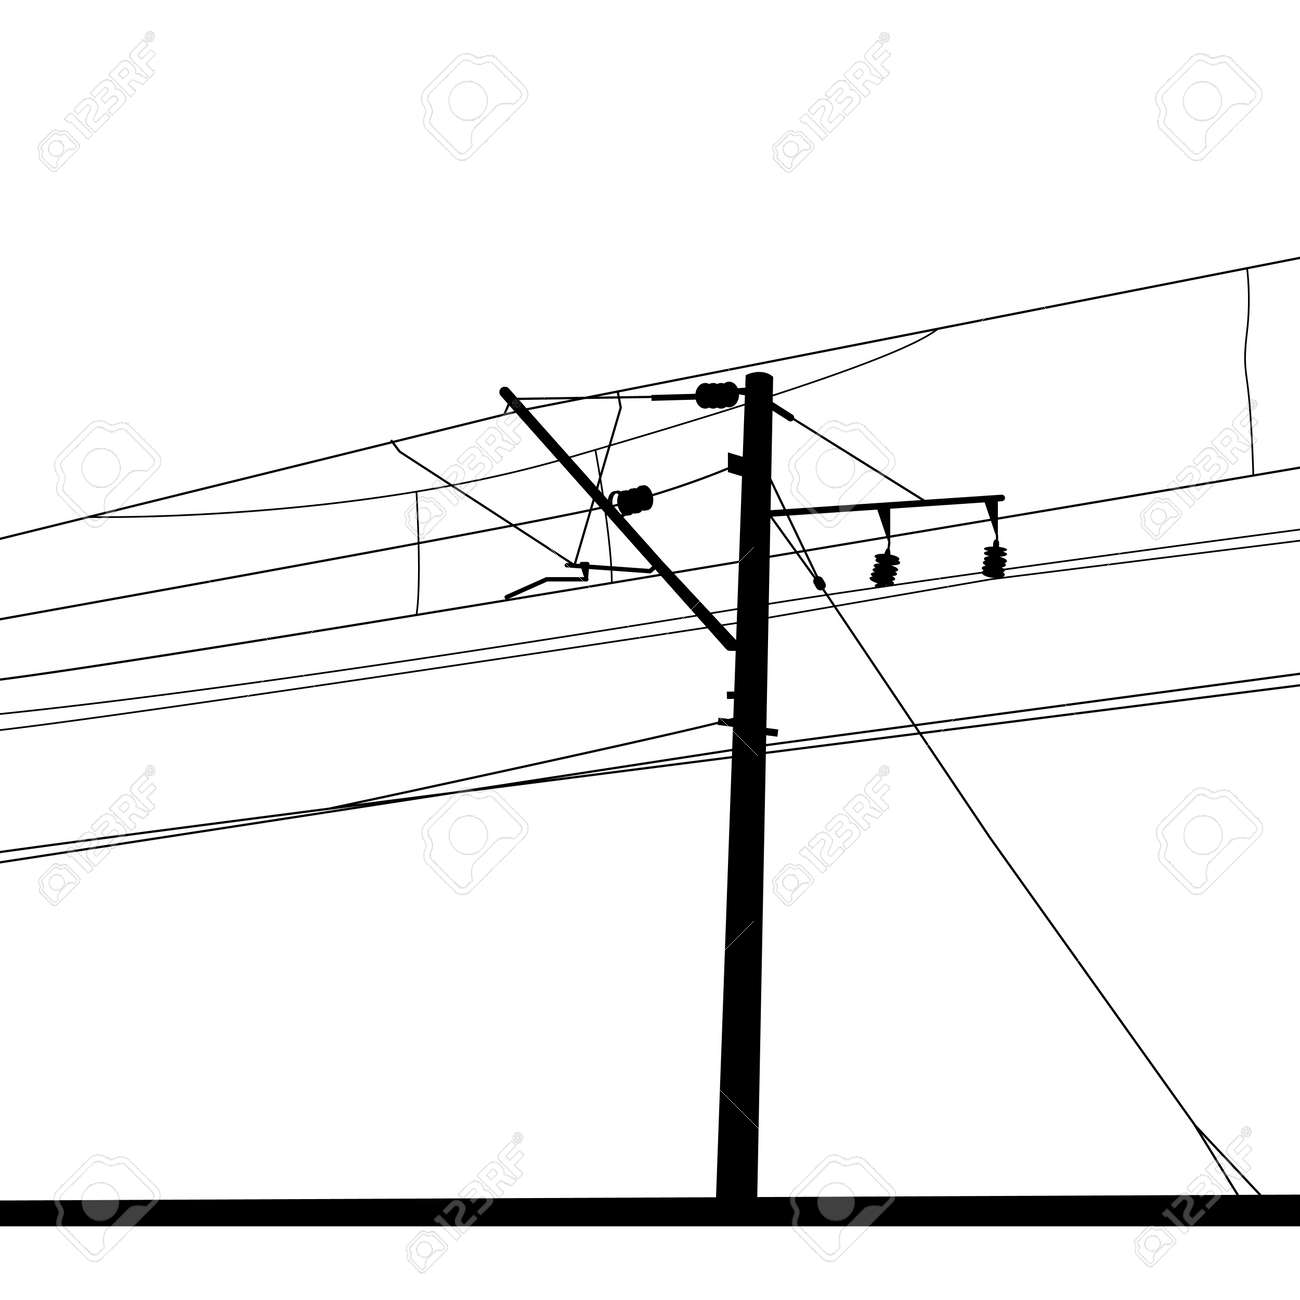 20671745 Railroad overhead lines Contact wire Vector illustration Stock Vector how to connect a wire how to connect a wire how to connect,Wiring Phone Lines